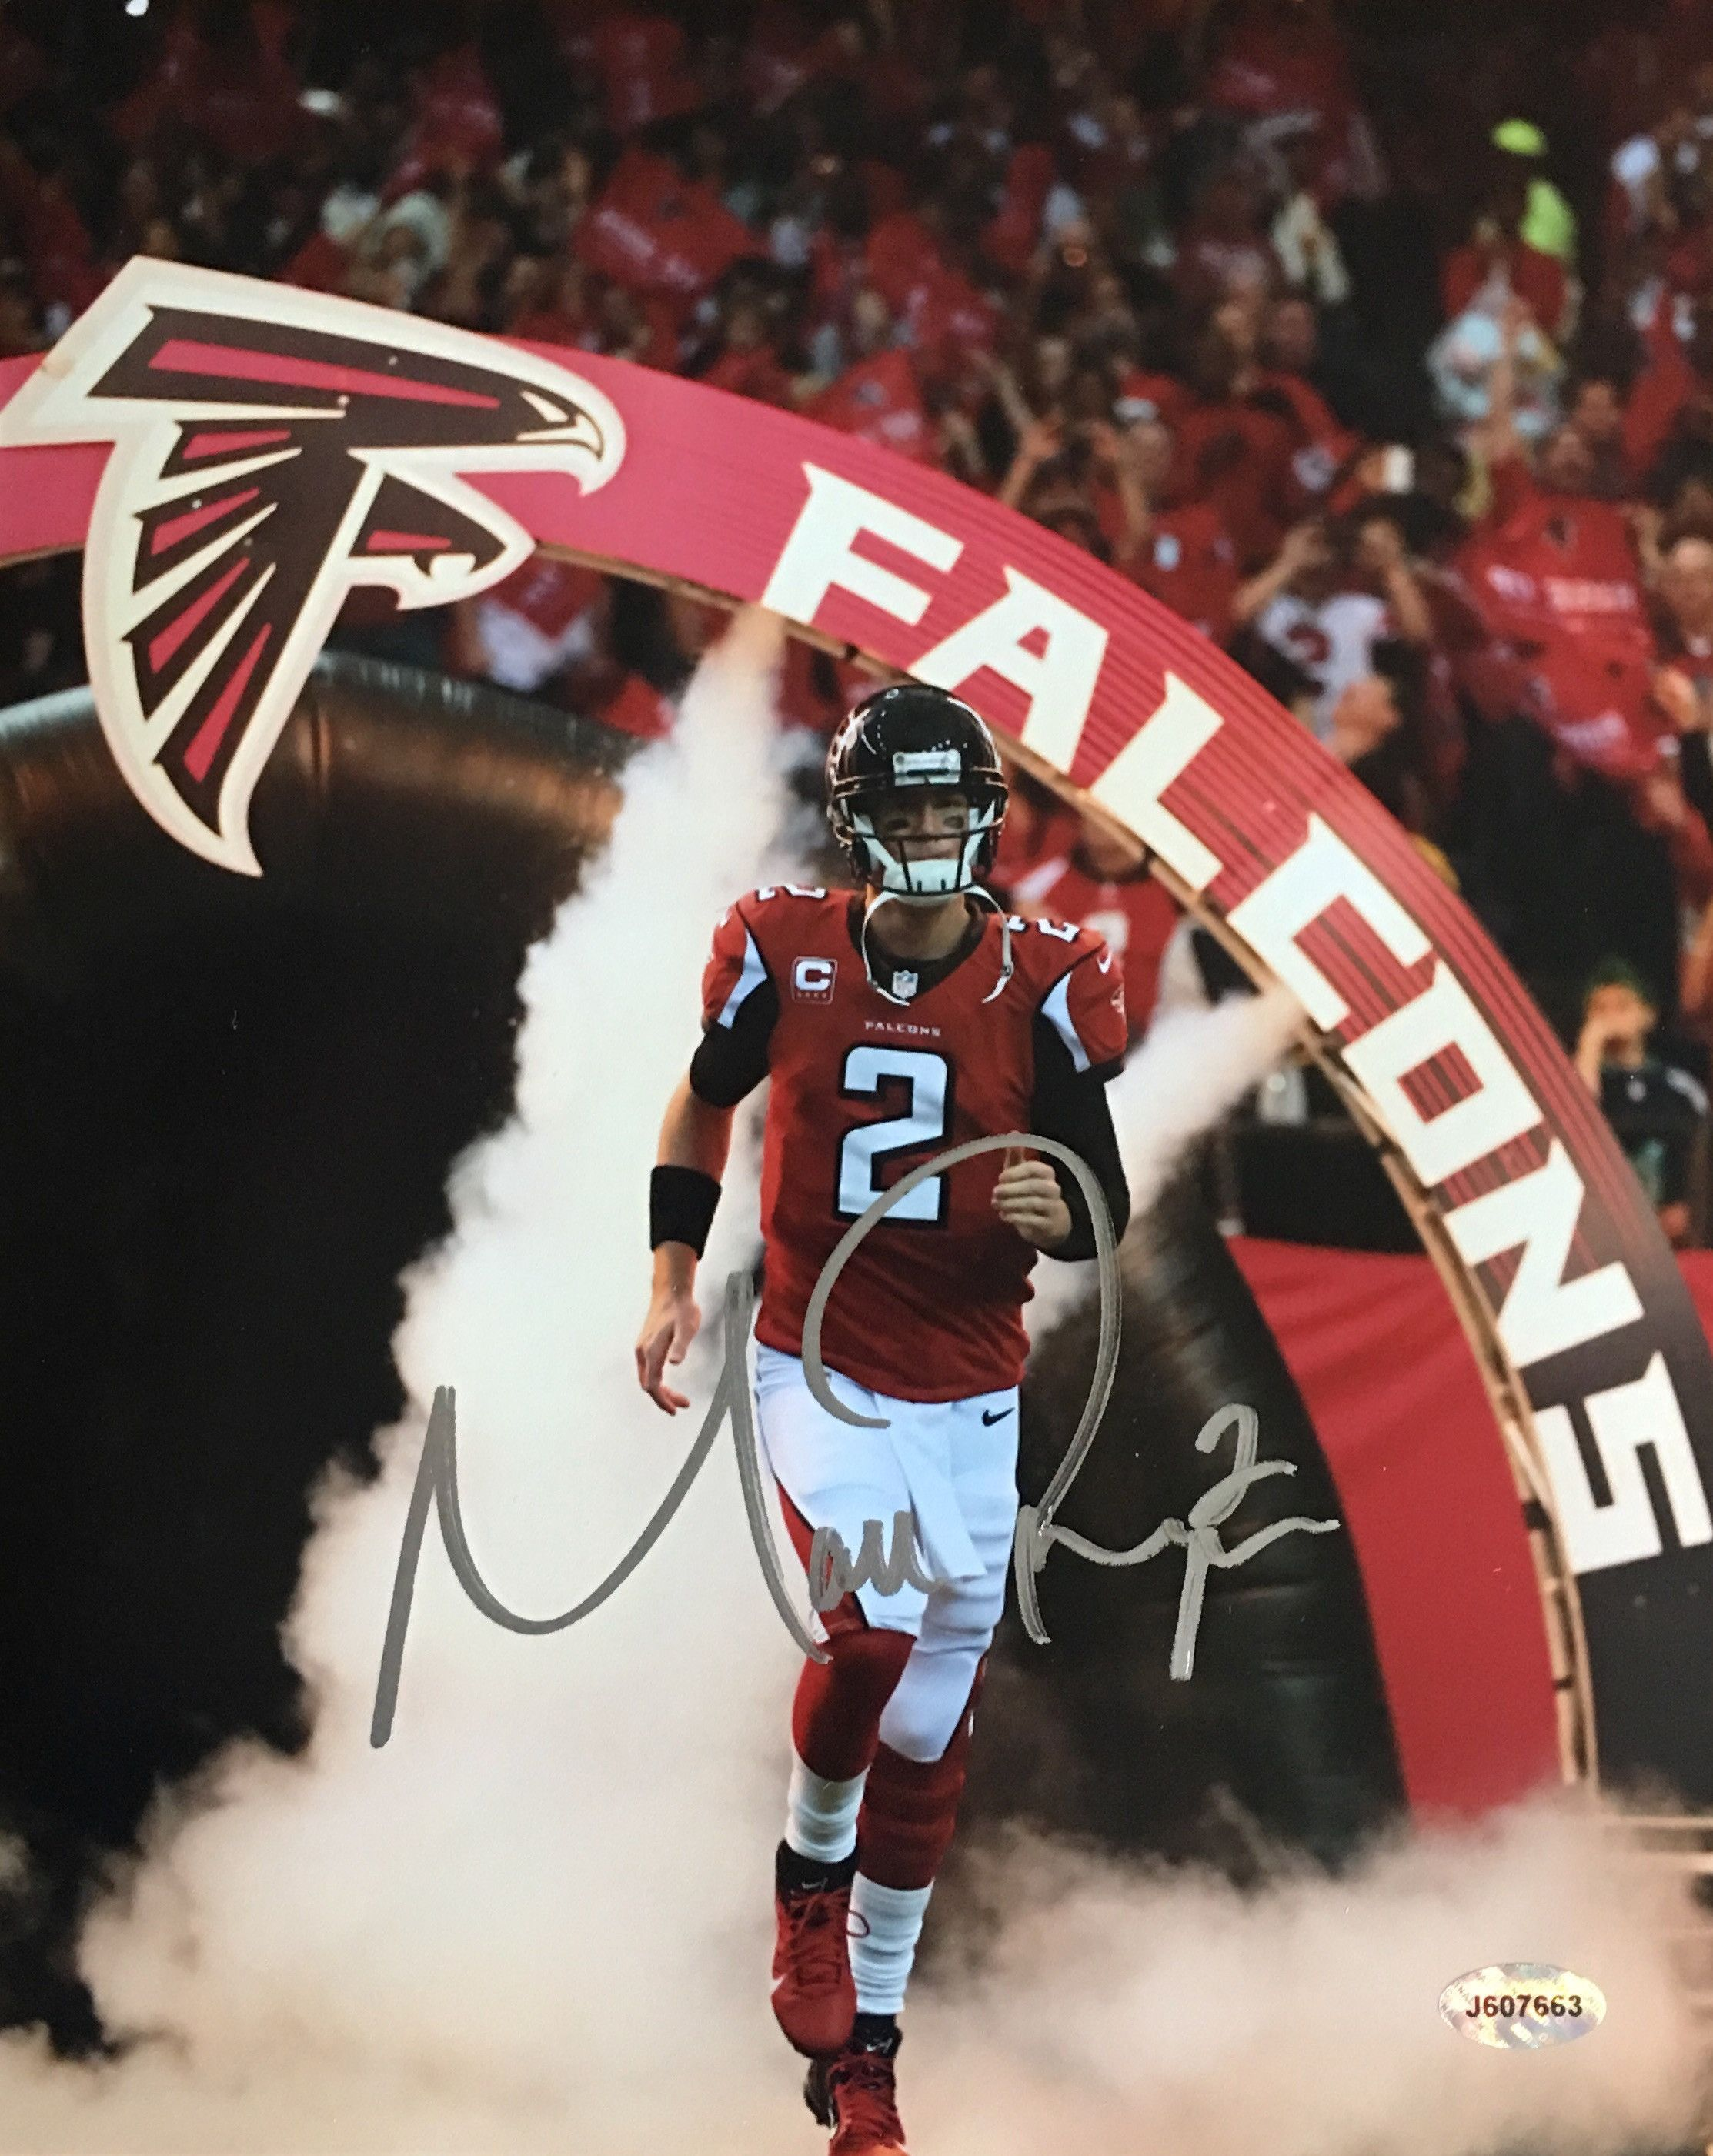 Matt Ryan Atlanta Falcons Signed 8x10 Photo Atlanta Falcons Football Atlanta Falcons Falcons Football